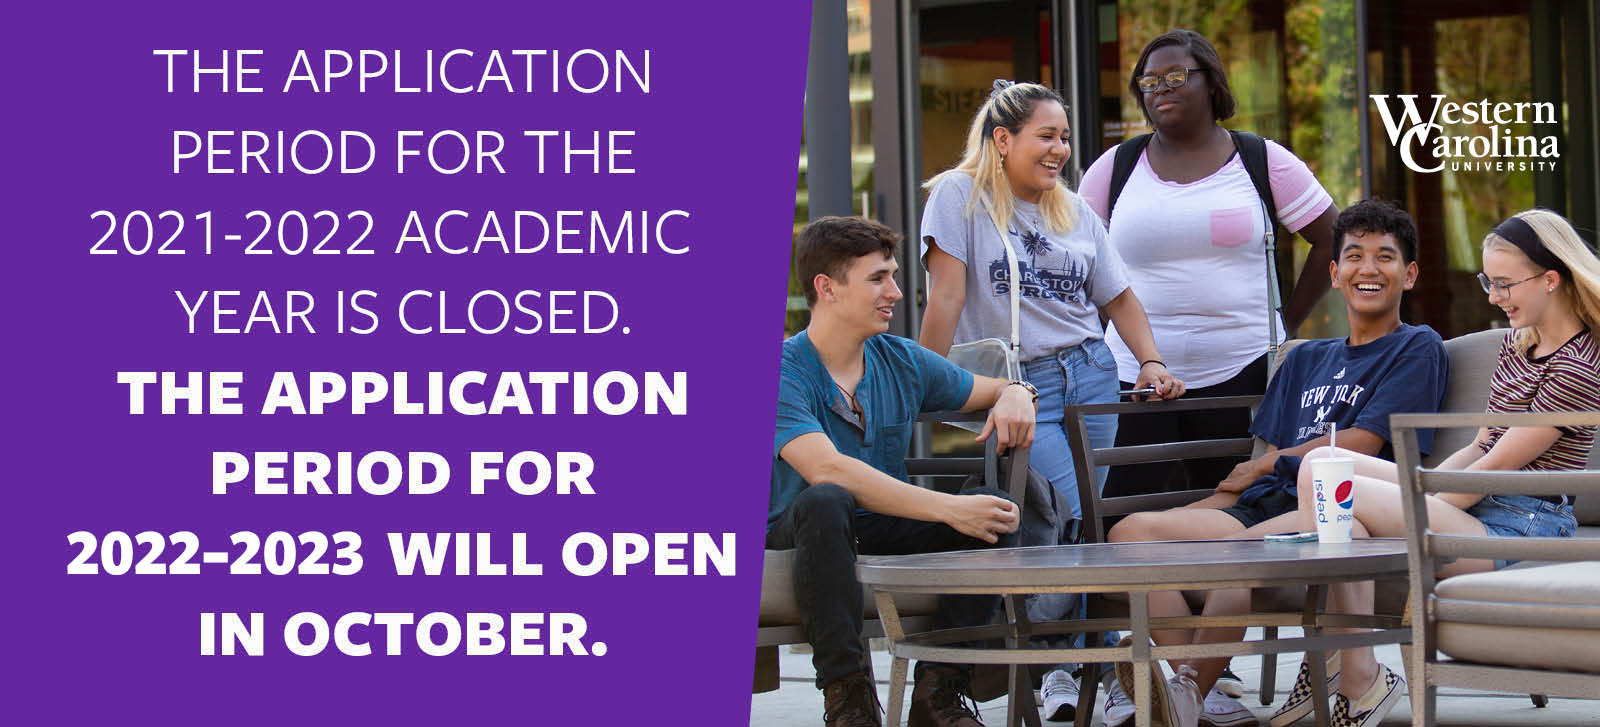 The application period for the 2021-2022 academic year is closed.